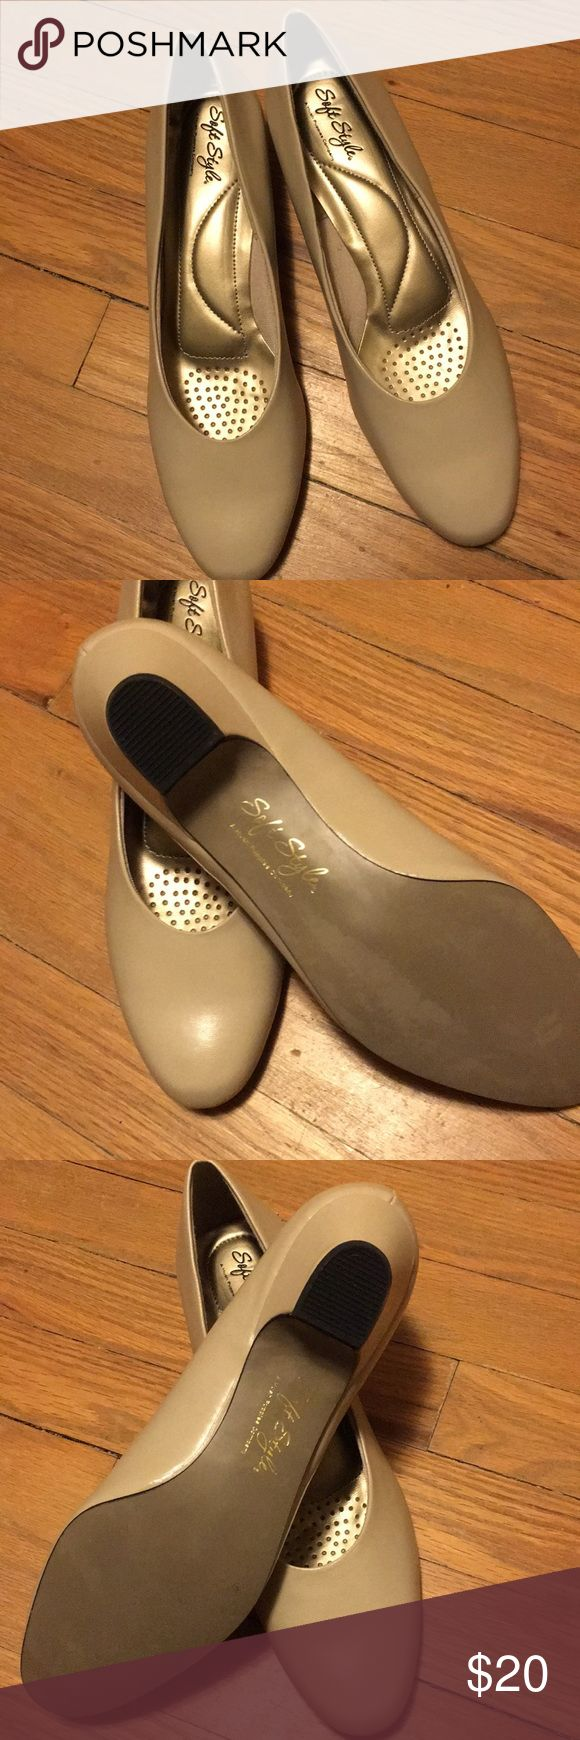 NWOB Soft Style by Hush Puppies low heel size 11 Beautiful new shoes never worn! Beige/nude with 1.5 inch heel. Hush Puppy brand. This shoe is stylish and comfortable!! Better than store purchase due to the great price as listed. soft style by hush puppies Shoes Heels